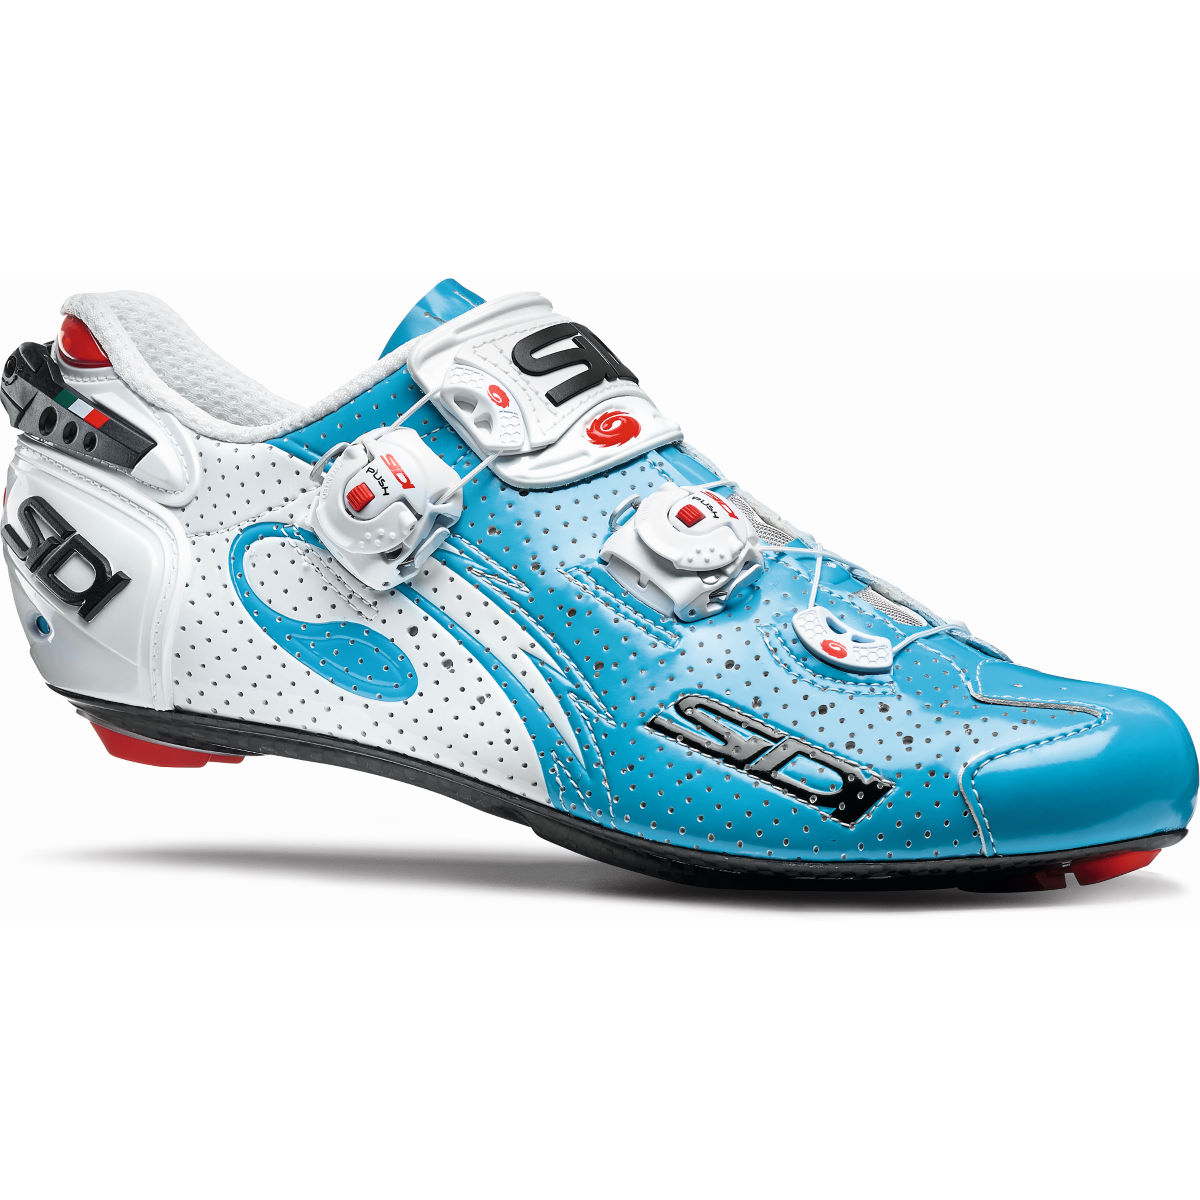 Chaussures Sidi Wire Carbon Air Vernice - 40 Bleu/Blanc